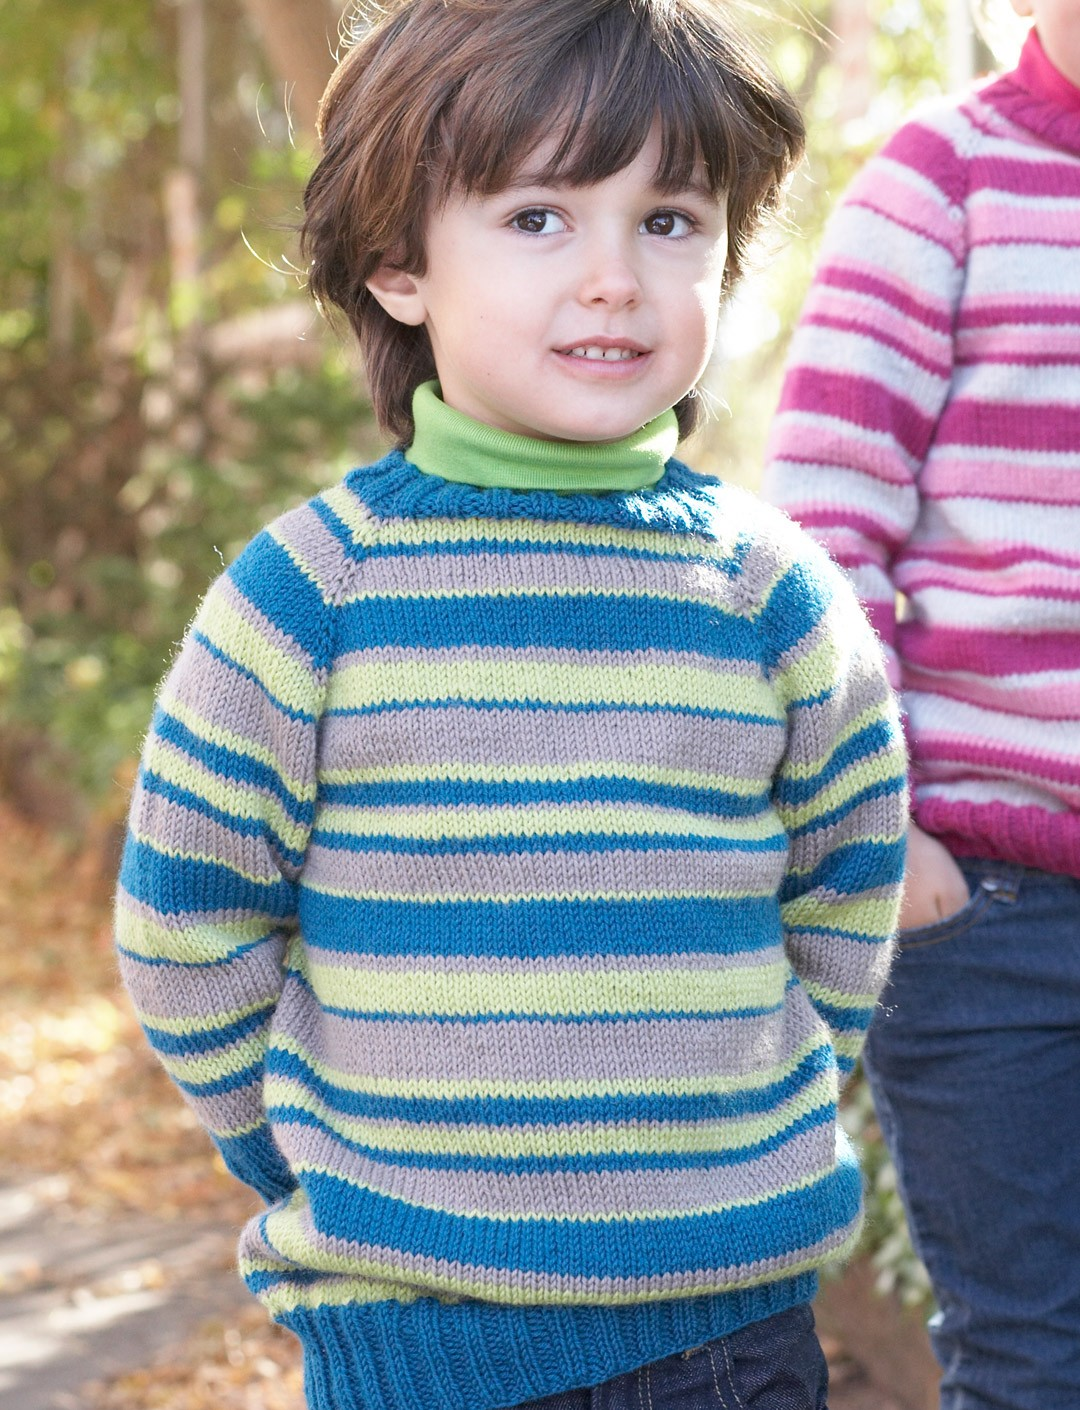 Knitting Pattern Striped Sweater : Patons Kids Top-Down Striped Sweater, Knit Pattern ...